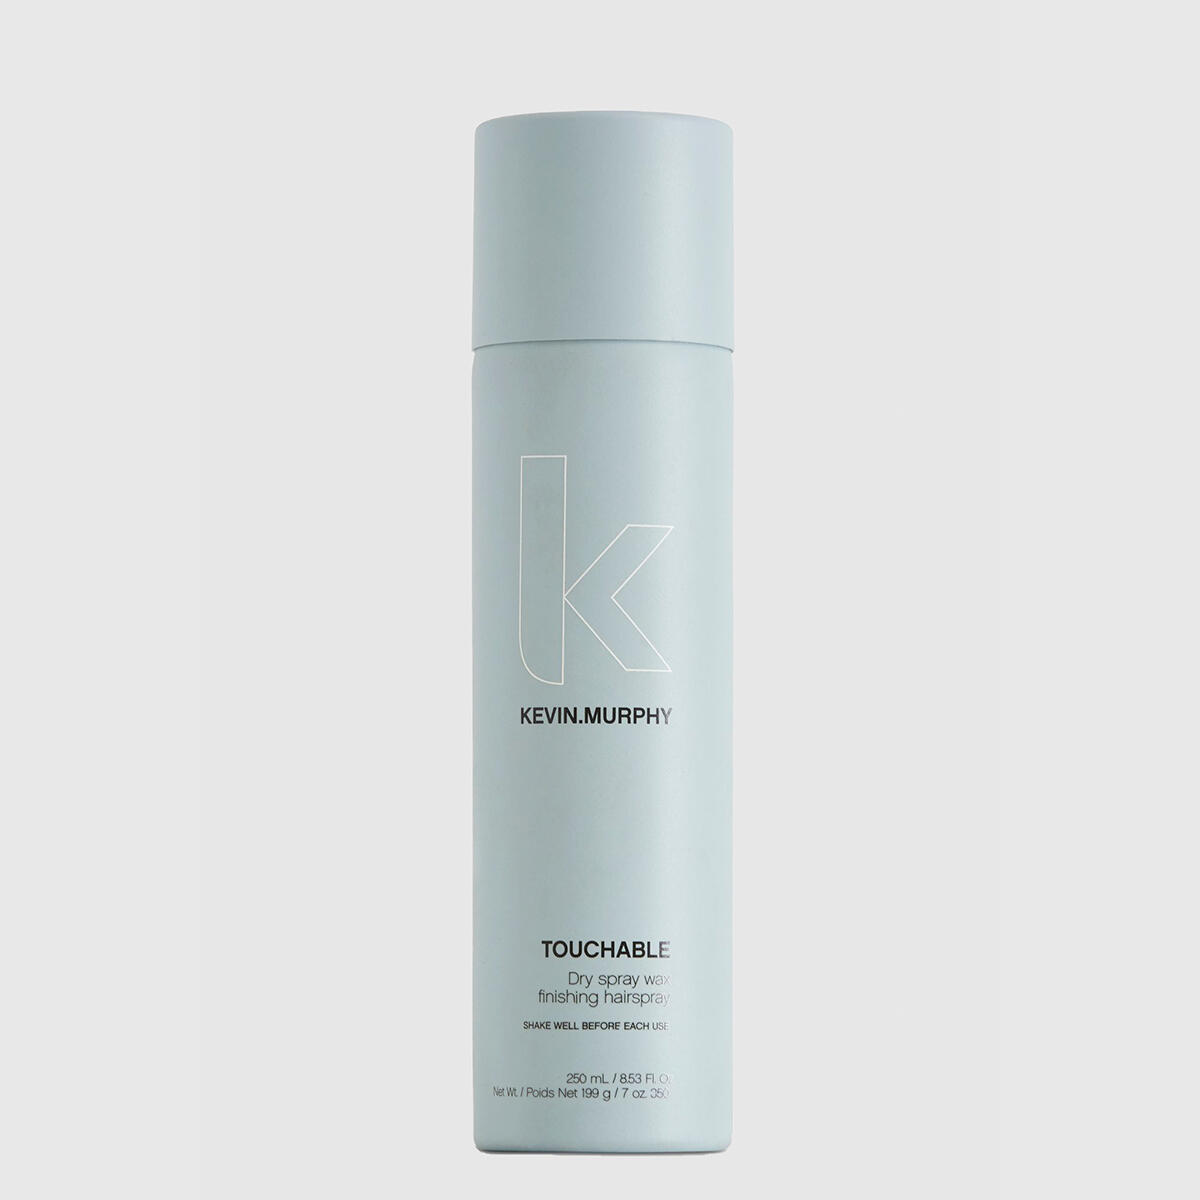 Kevin Murphy Touchable null